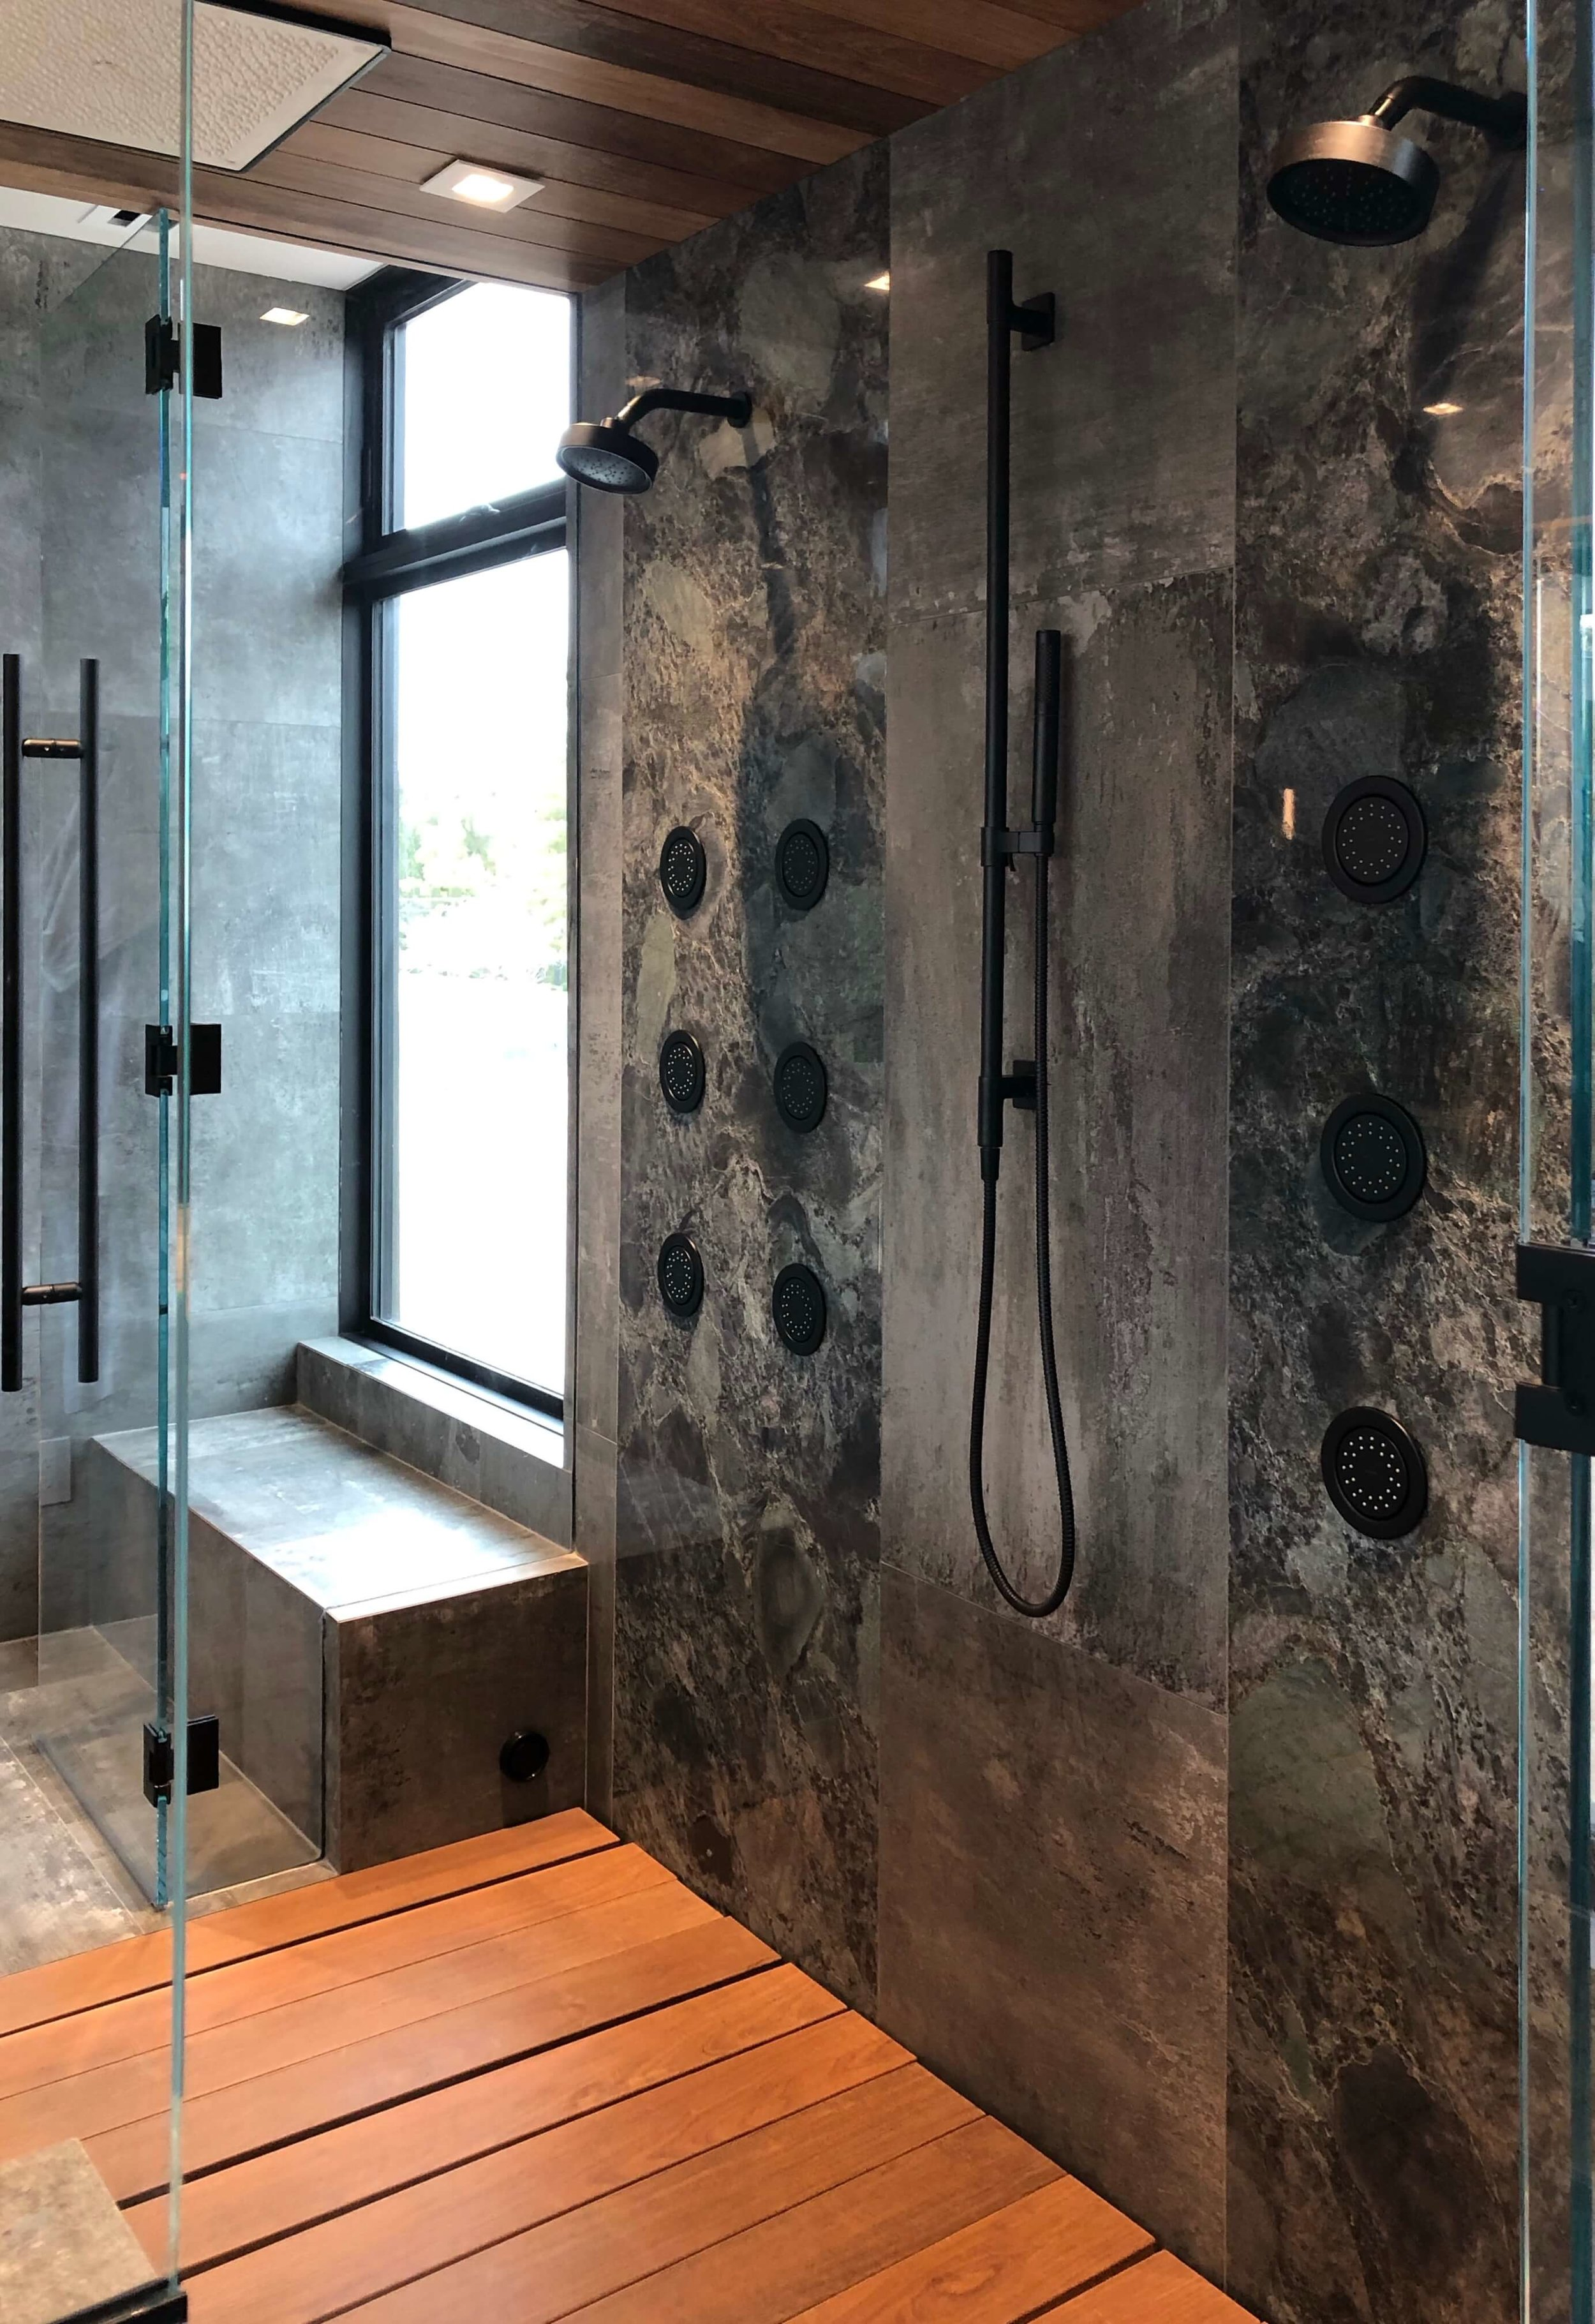 Super sized double shower with body sprays |  The New American Remodel 2019